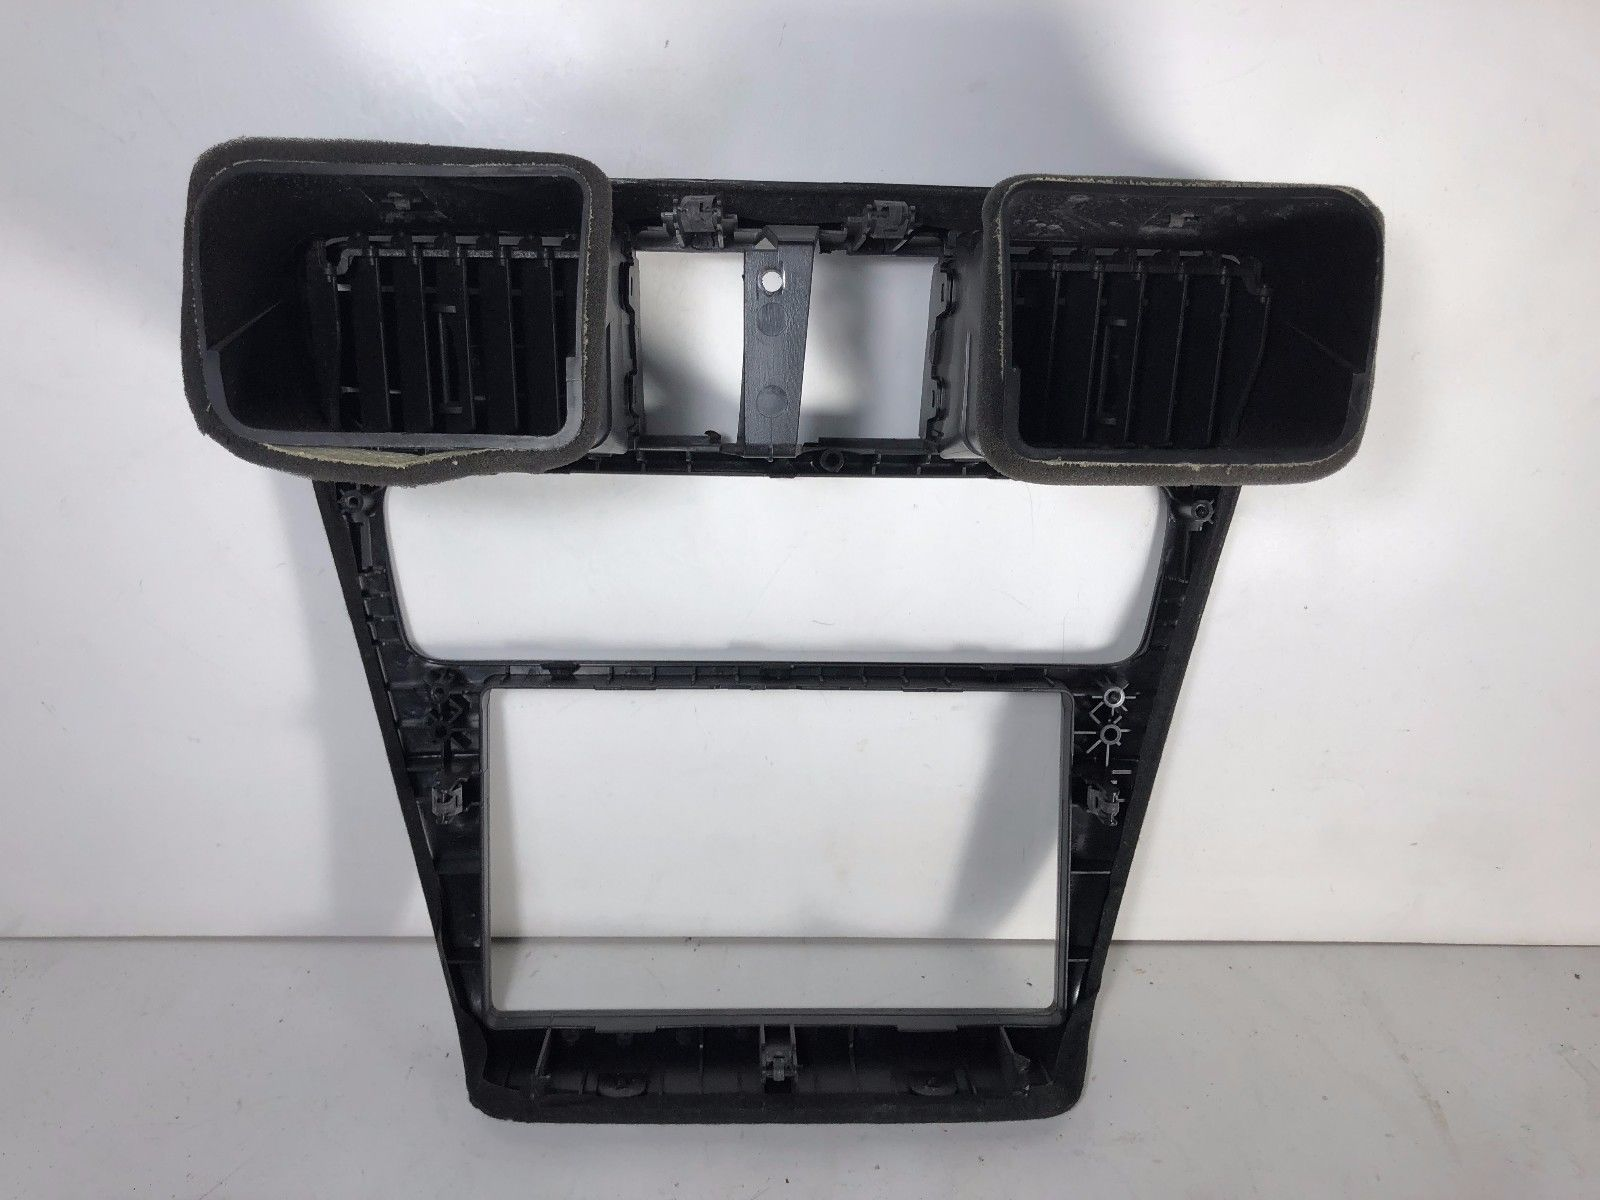 1998 1999 2000 2001 2002 Honda Accord Interior Radio W Vents